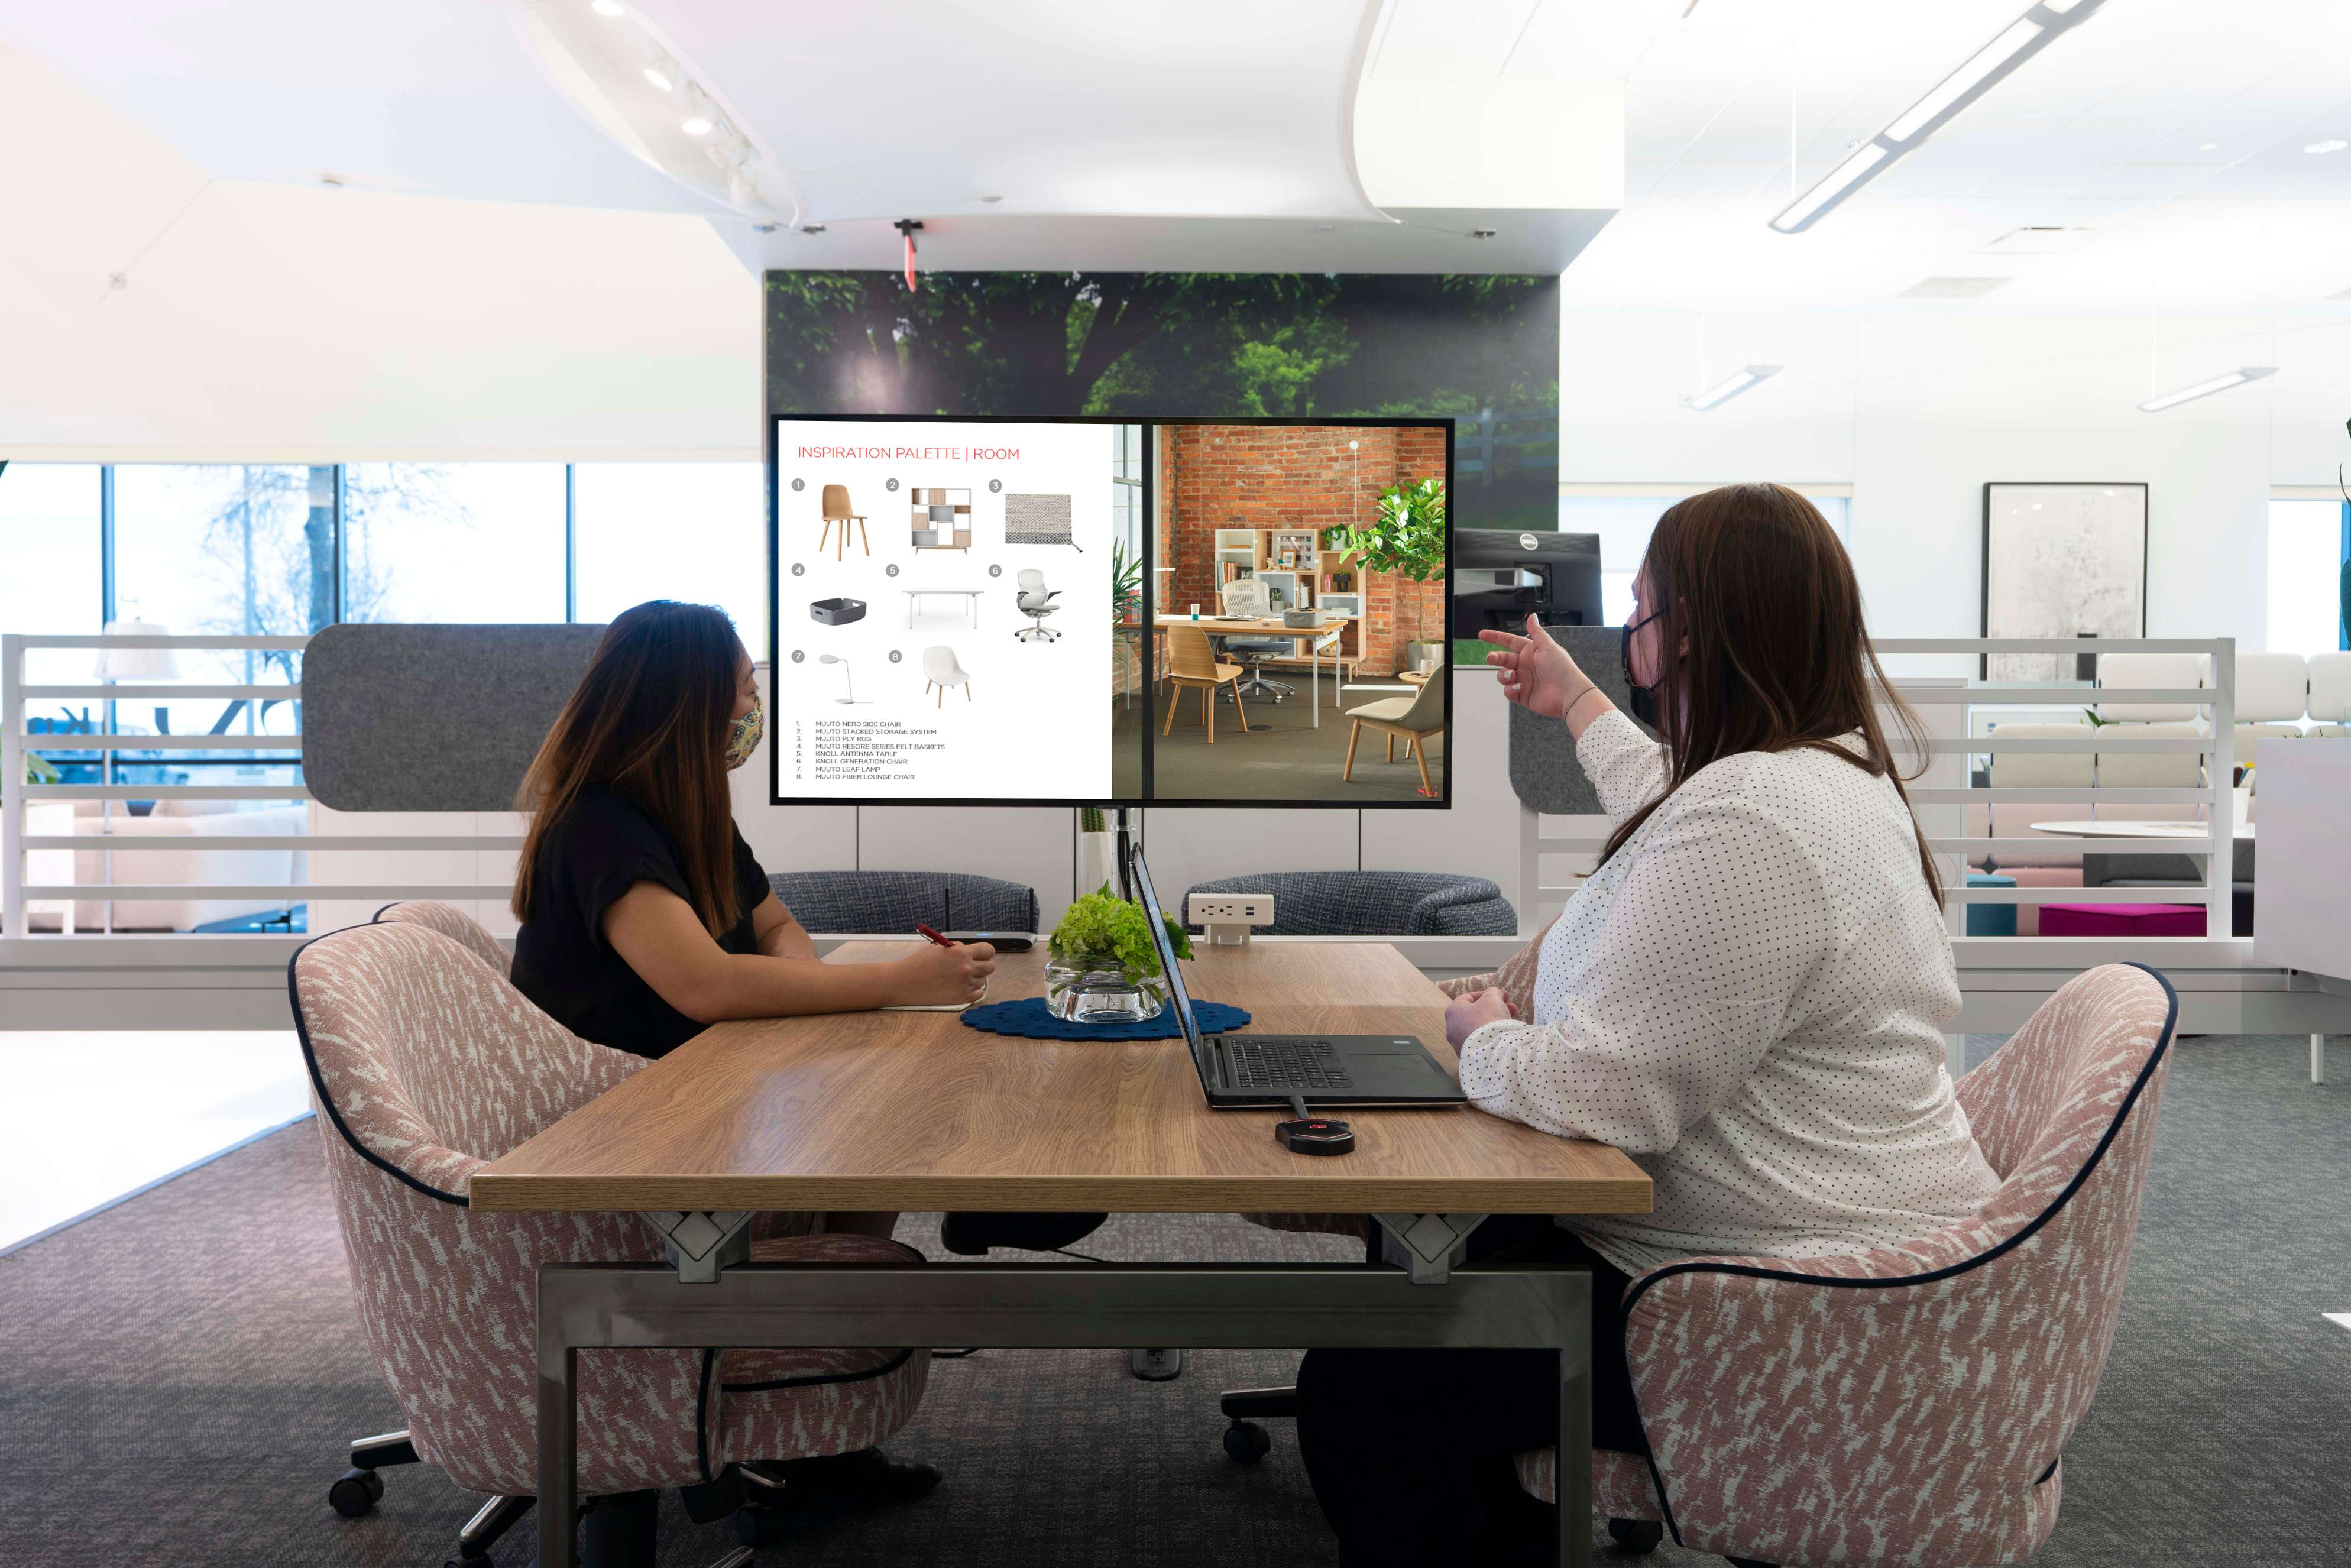 Employees working together using a collaborative space and technology